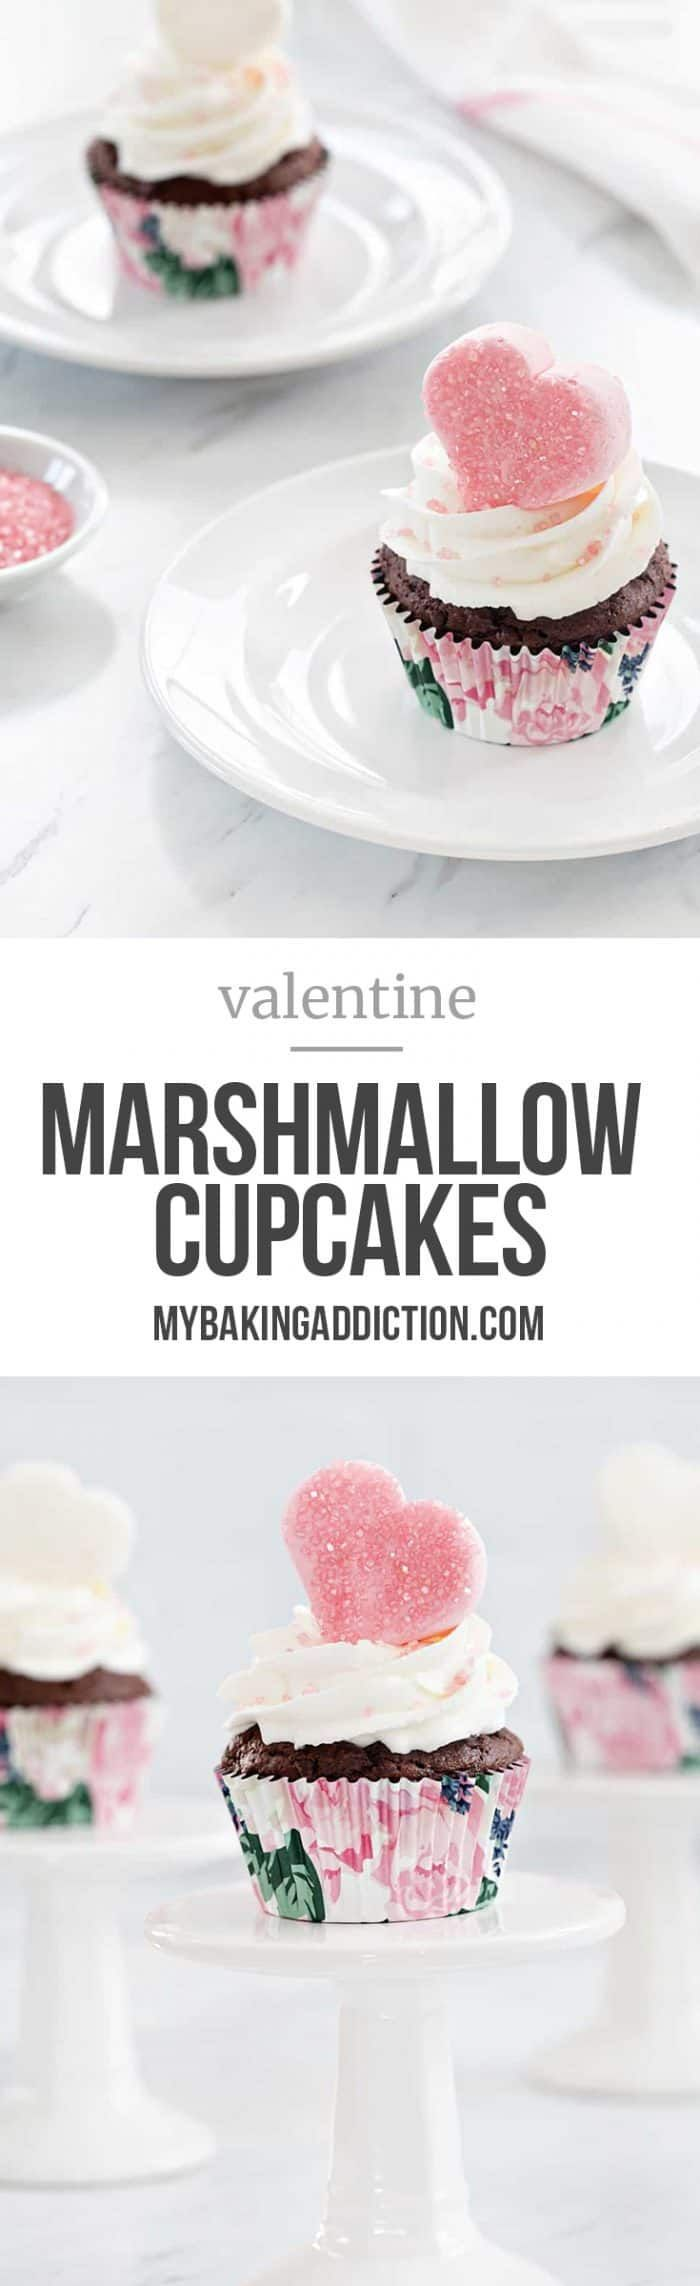 Valentine Marshmallow Cupcakes are a simple and delicious dessert for Valentine's Day. Sparkly marshmallow hearts makes them love-ly! #cupcakes #marshmallow